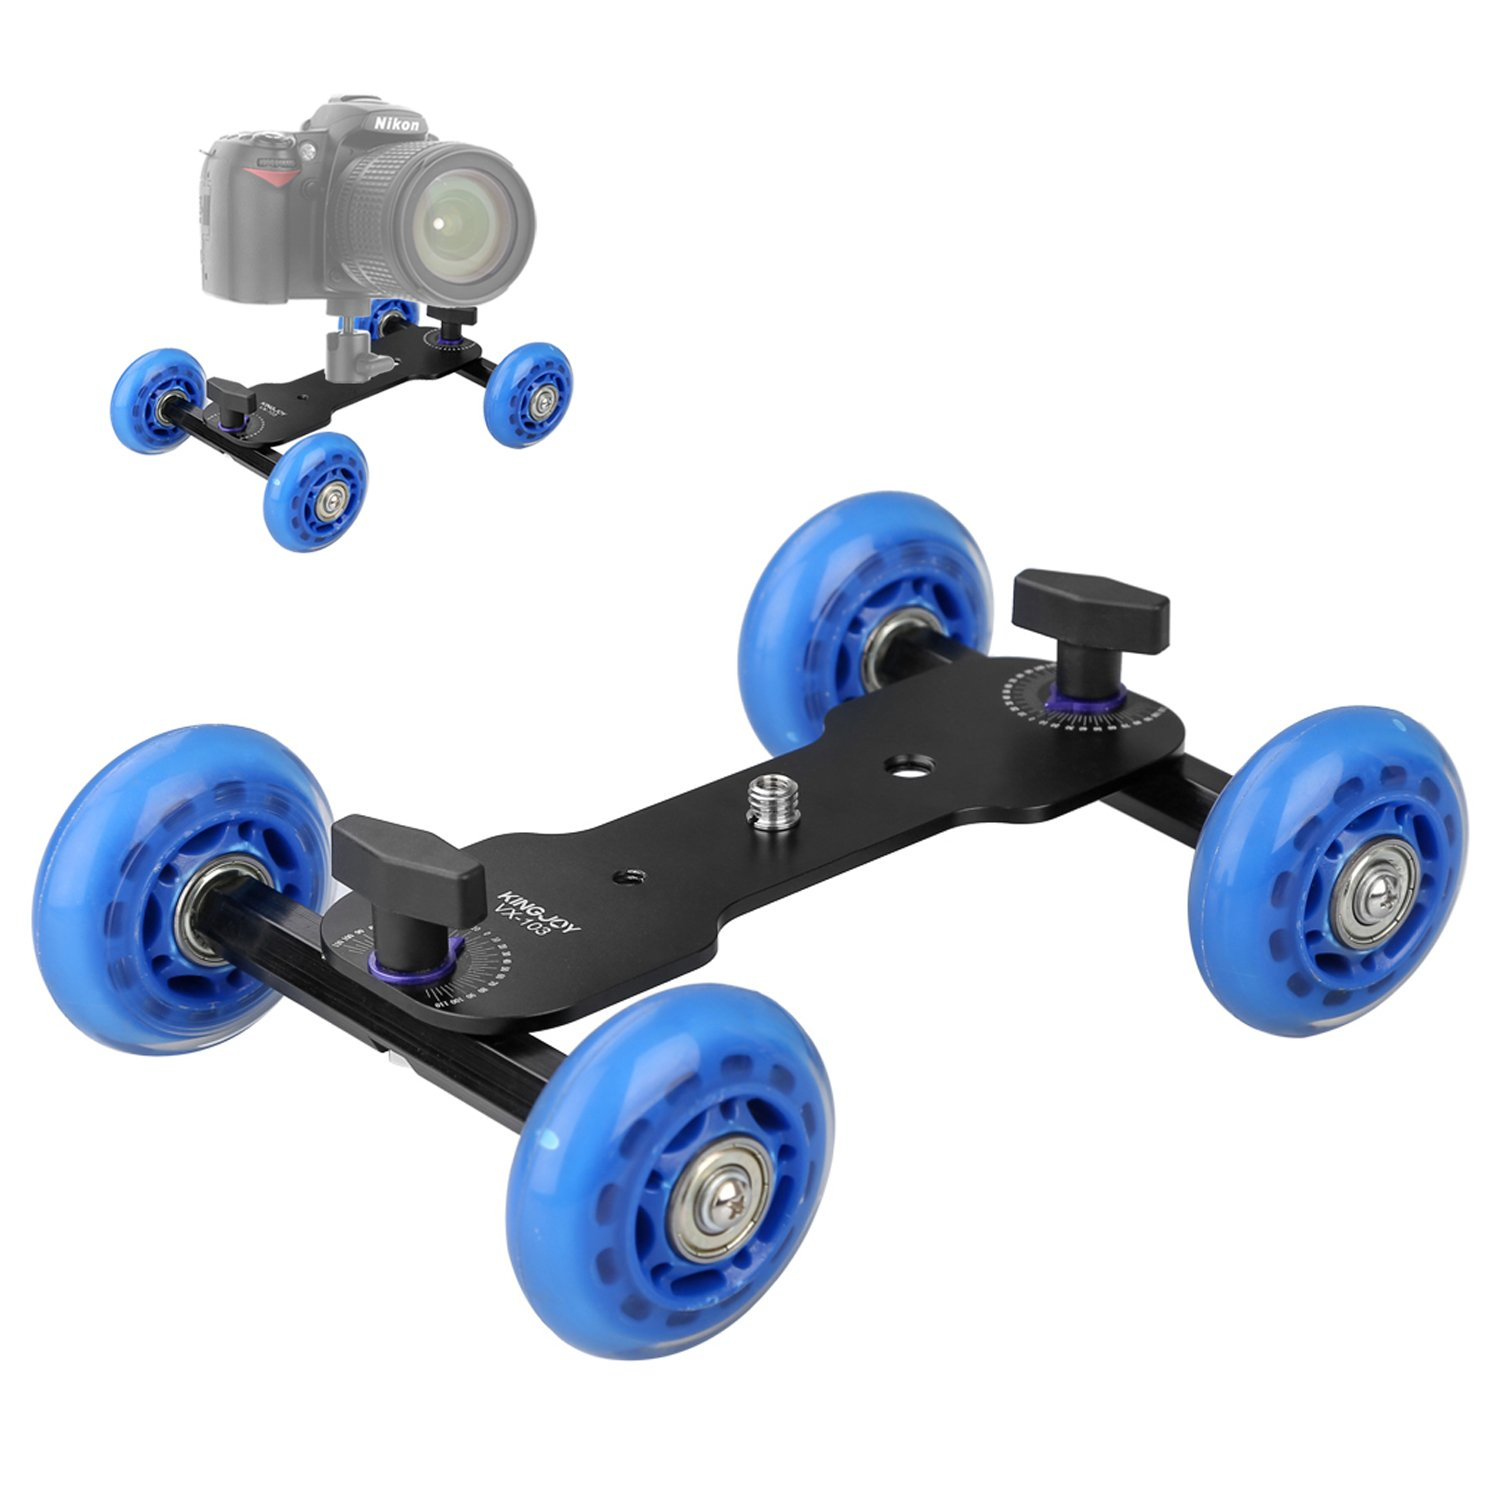 pangshi Tabletop Mobile Rolling Slider Dolly Car Skater Video Track Rail Stabilizer with 1/4-inch Quick Male Thread 11lbs/5kg Load Capacity Compatible with Speedlite DSLR Cameras Video Camcorders